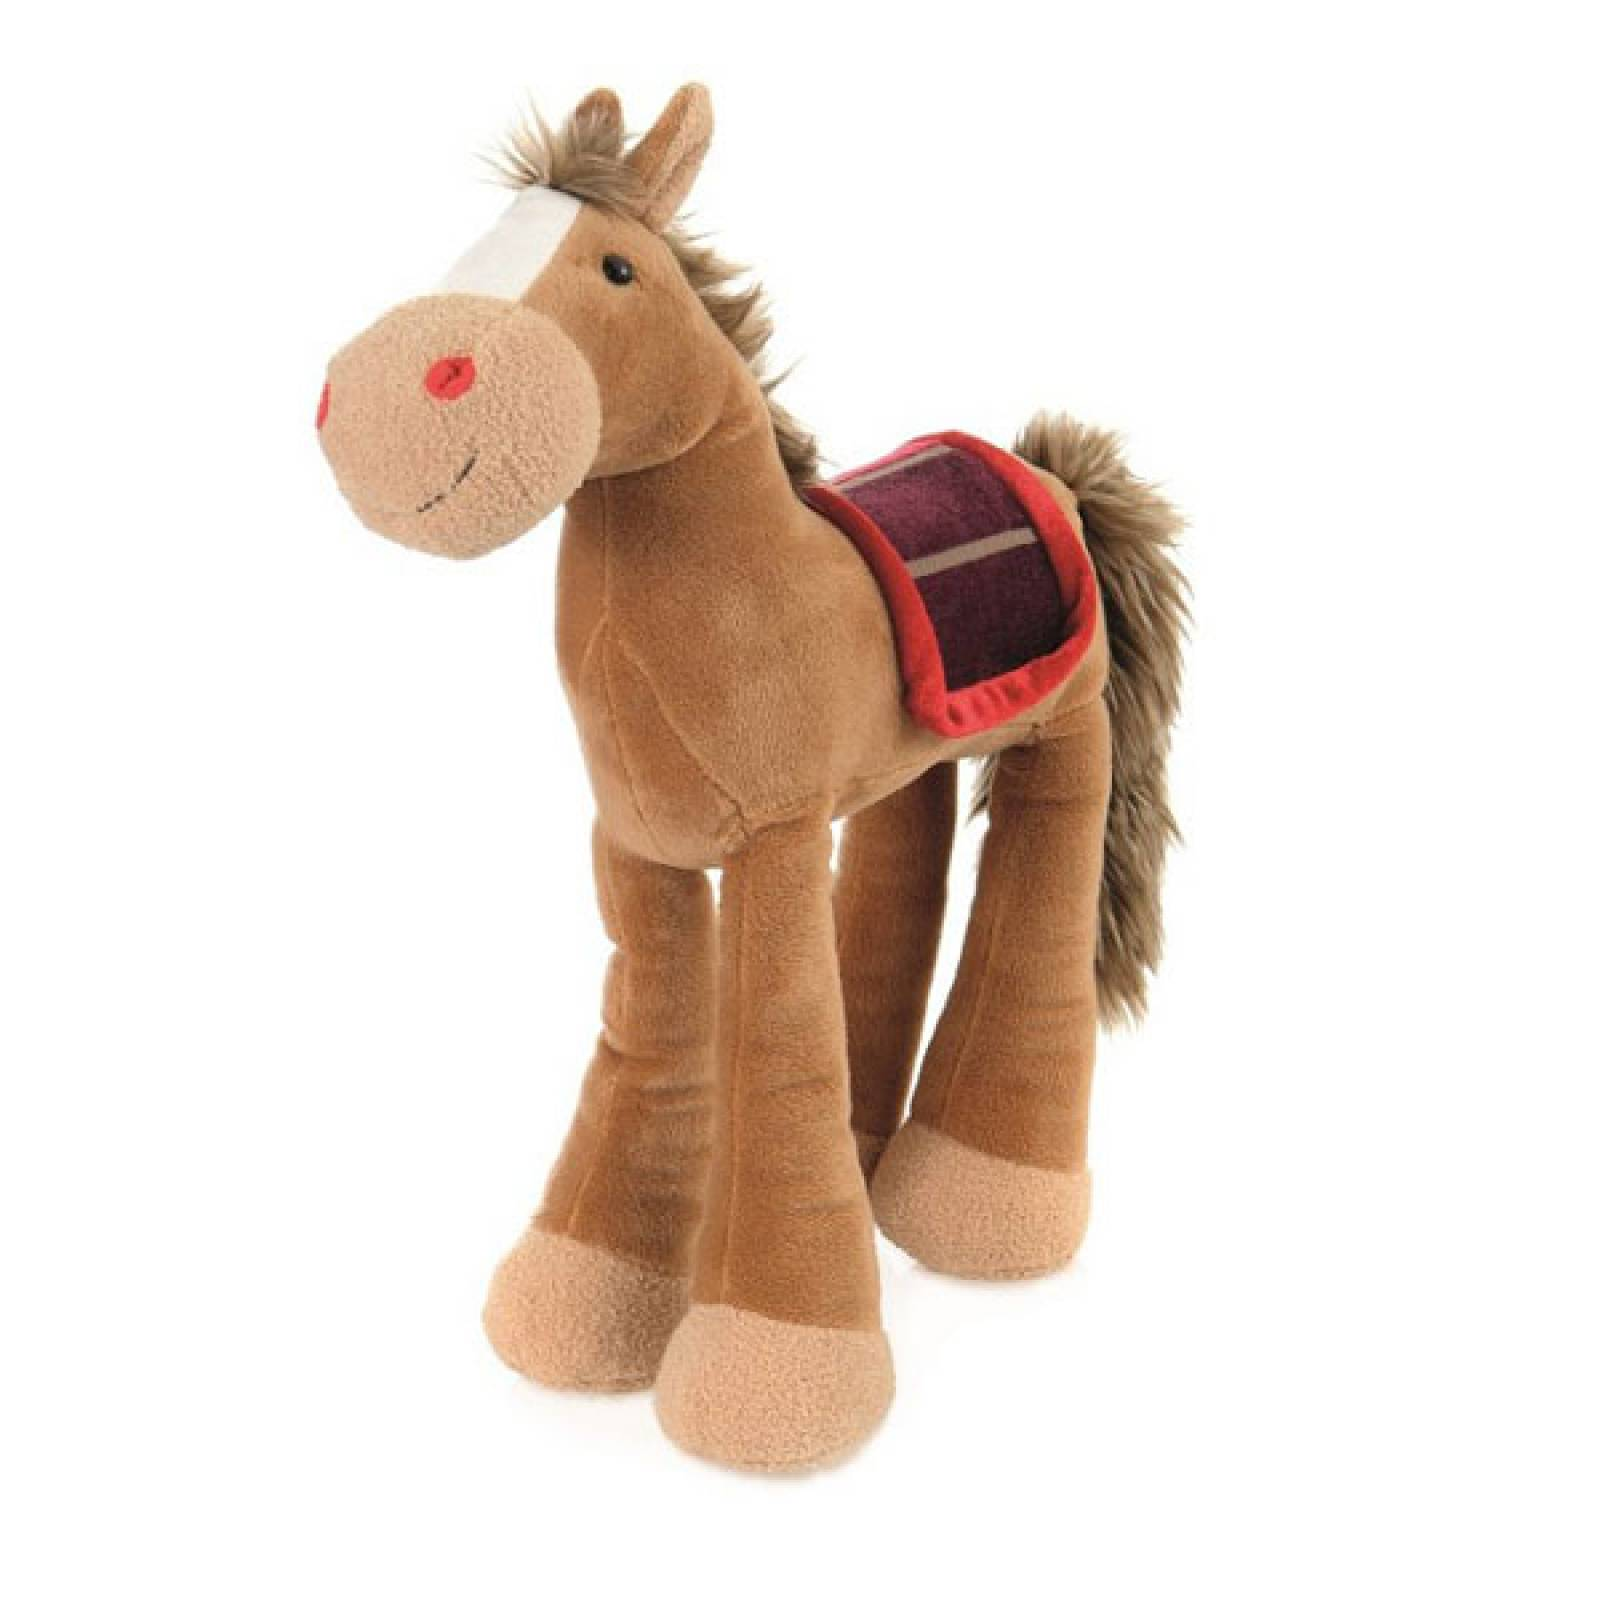 Small Ferdinand Horse Soft Toy 0+ thumbnails